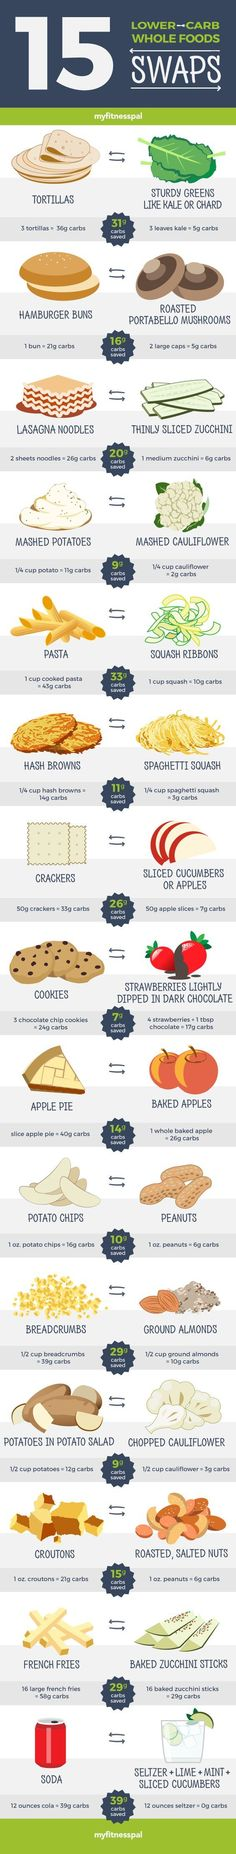 lower carb swaps: